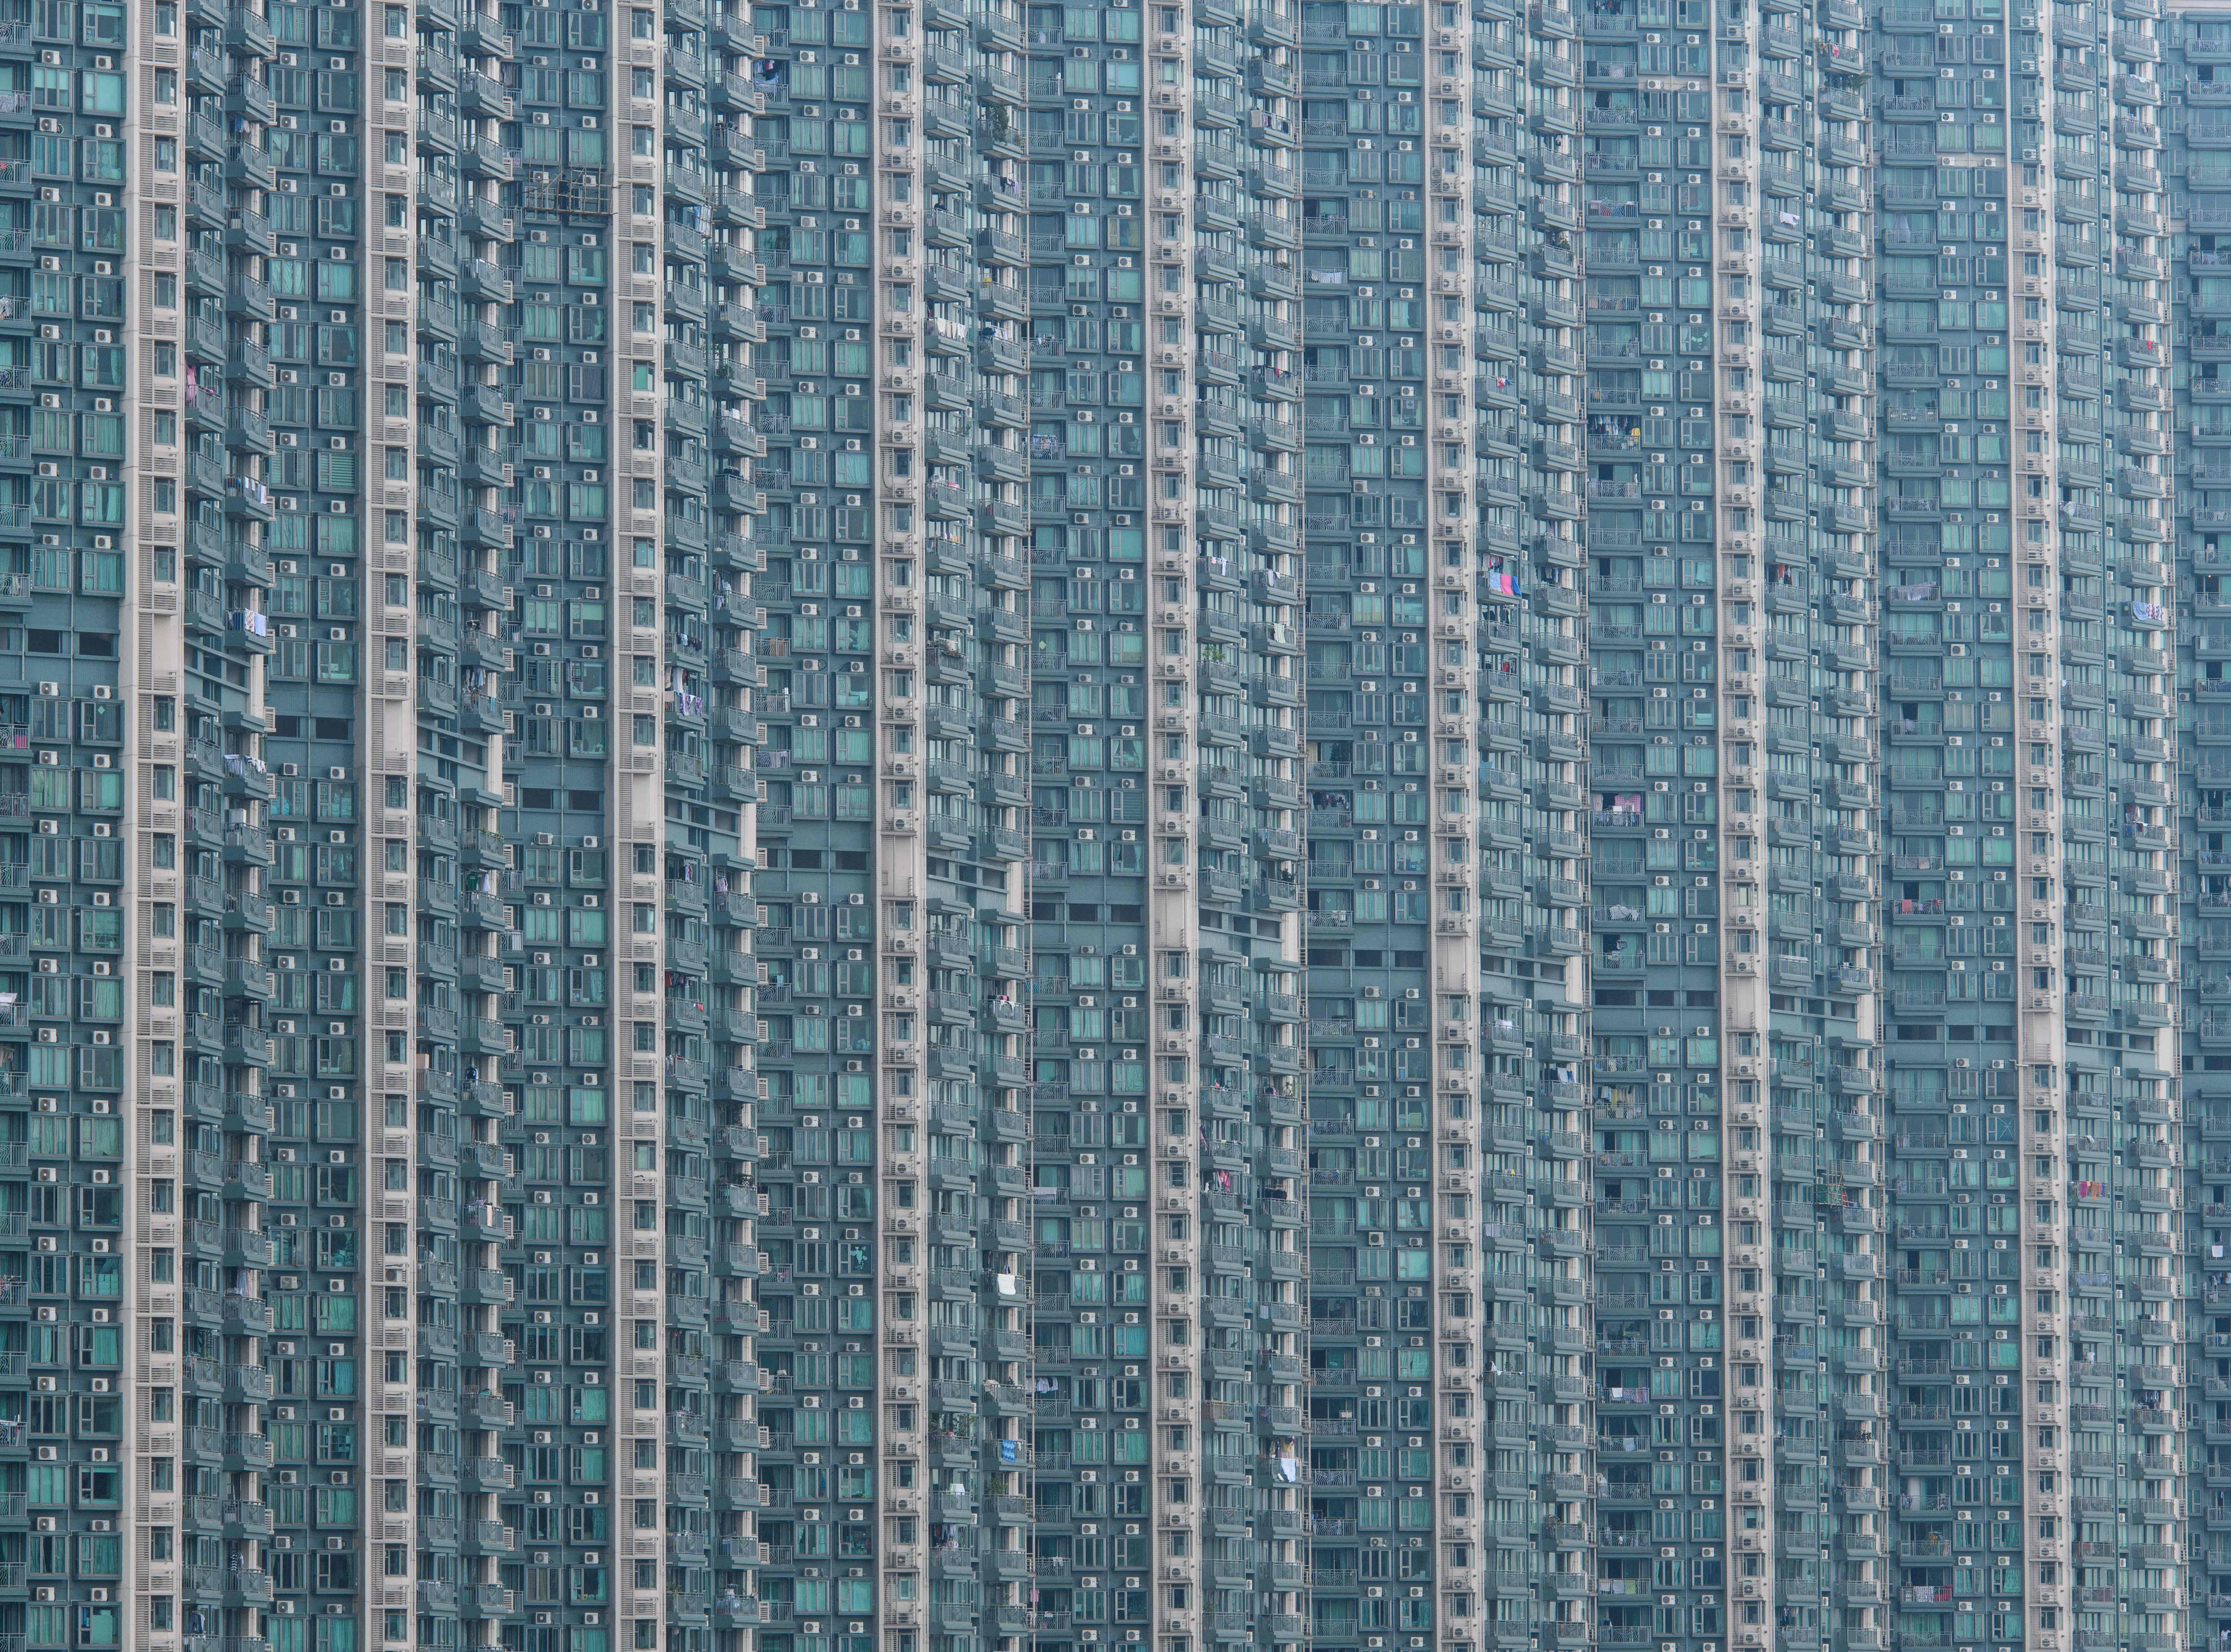 A general view of a residential building complex is pictured in Hong Kong on Oct. 19, 2018.